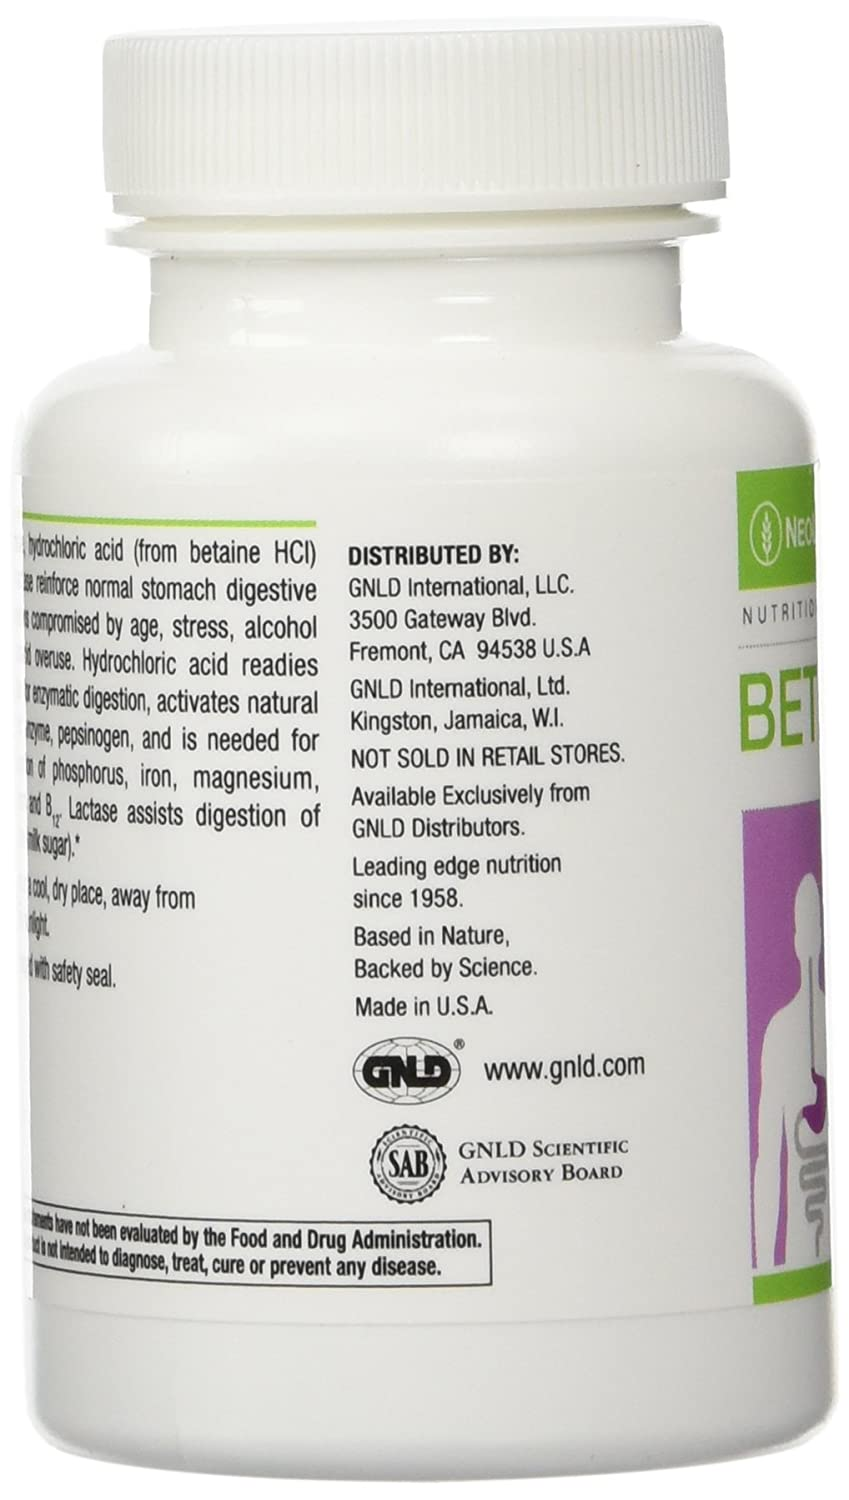 Neolife Beta-Gest Stomach Targeted Digestion Aid, by GNLD